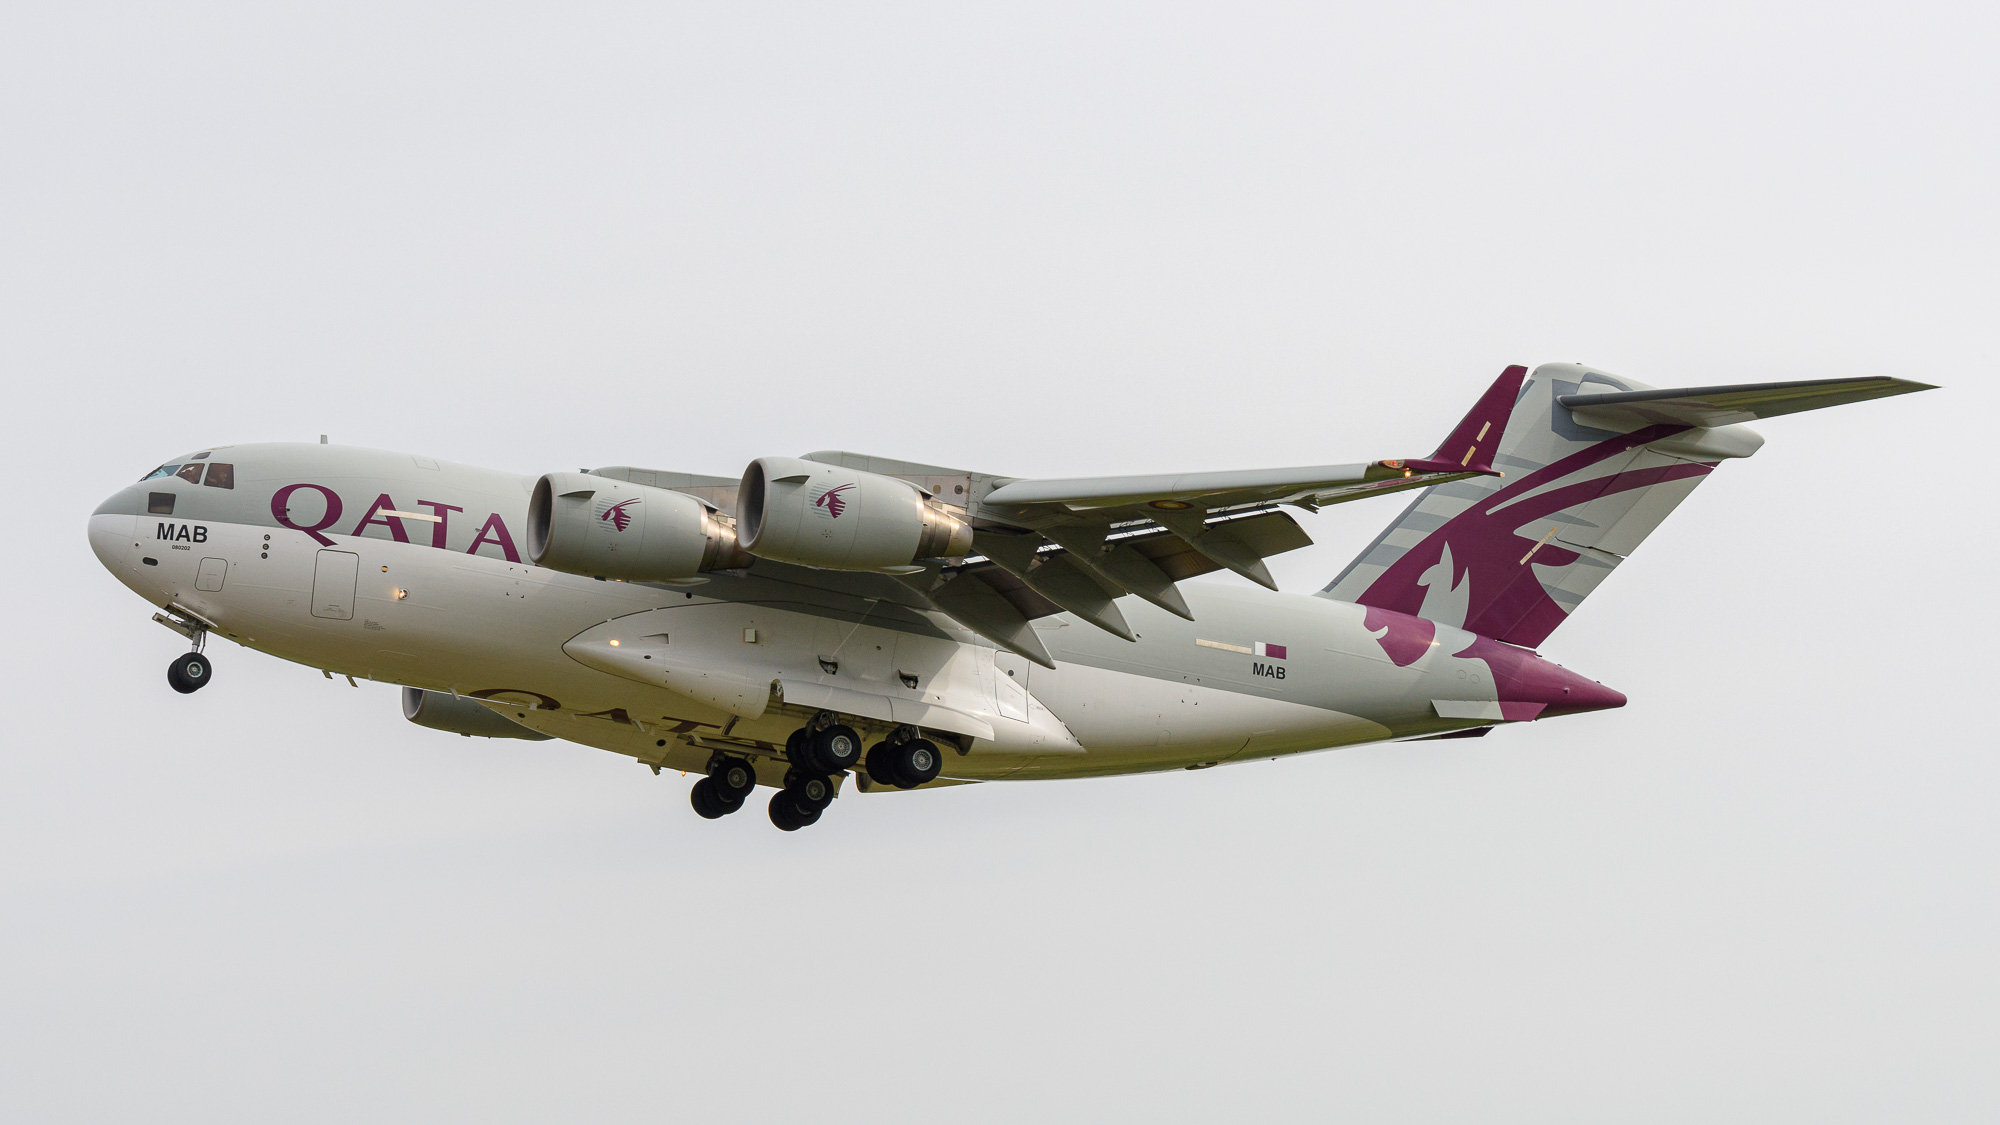 C-17 from Qatar, in the colours of Qatar airways